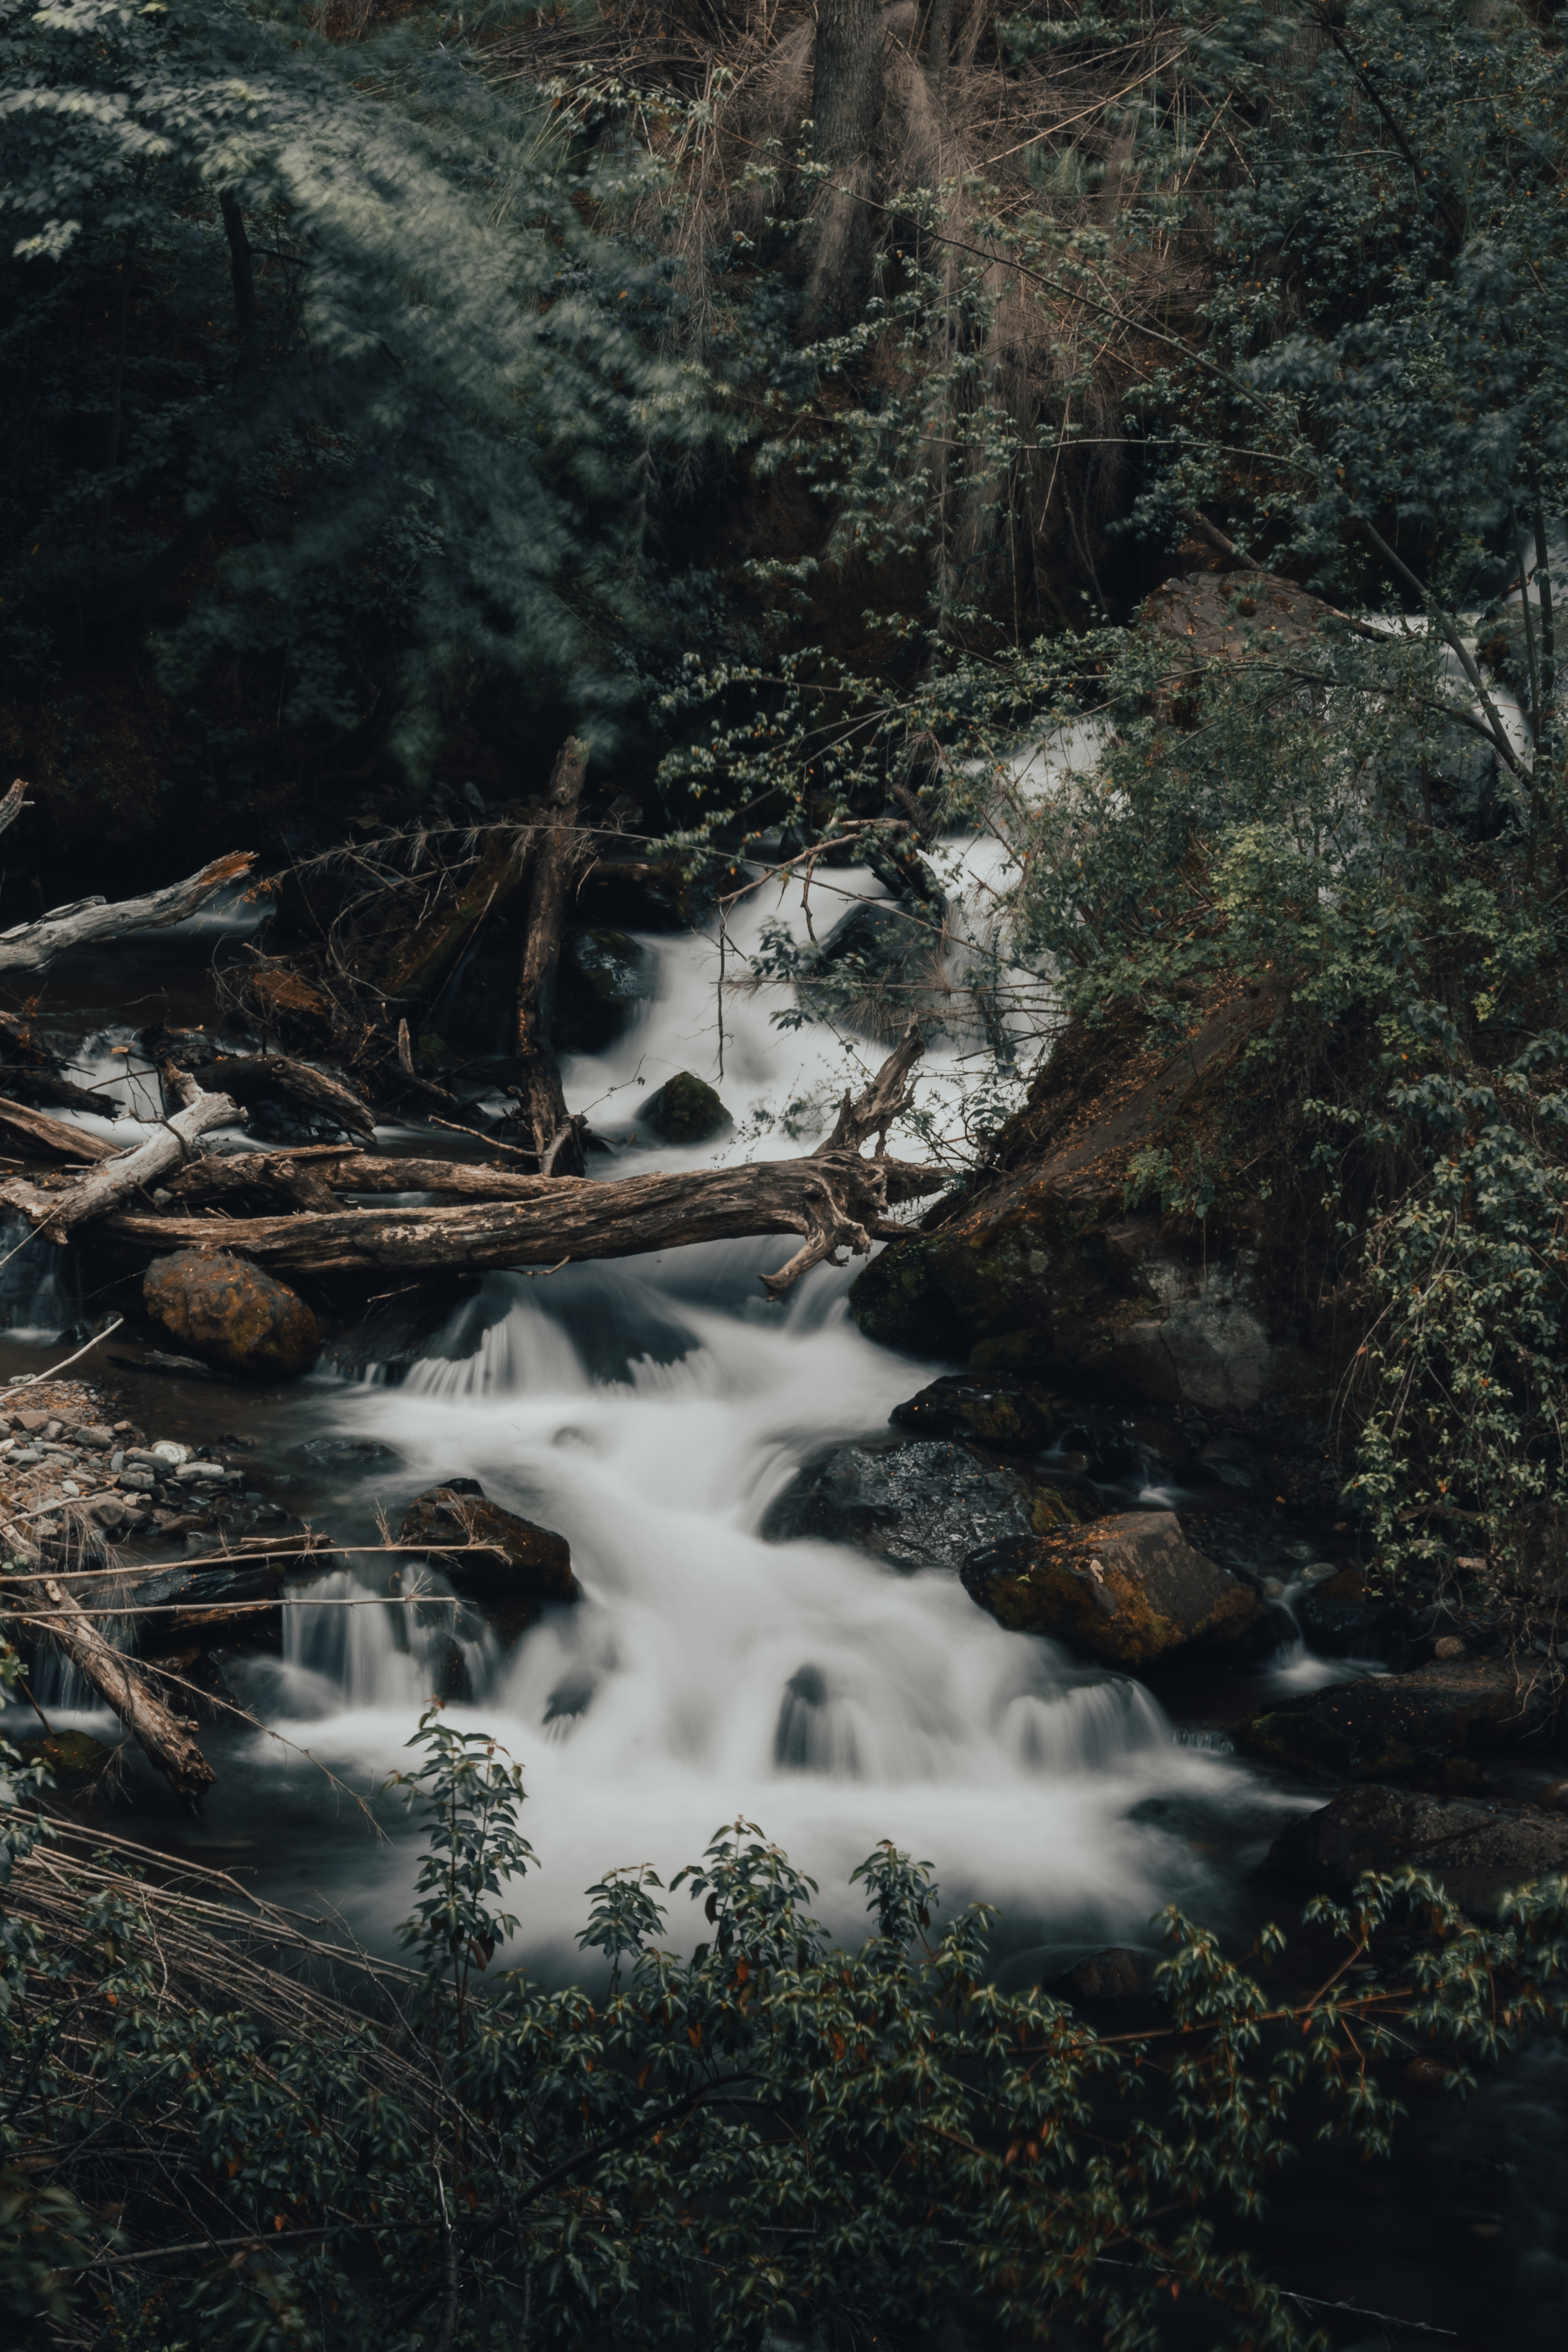 144257 download wallpaper Nature, Rivers, Creek, Brook, Stones, Logs, Wildlife, Bush screensavers and pictures for free